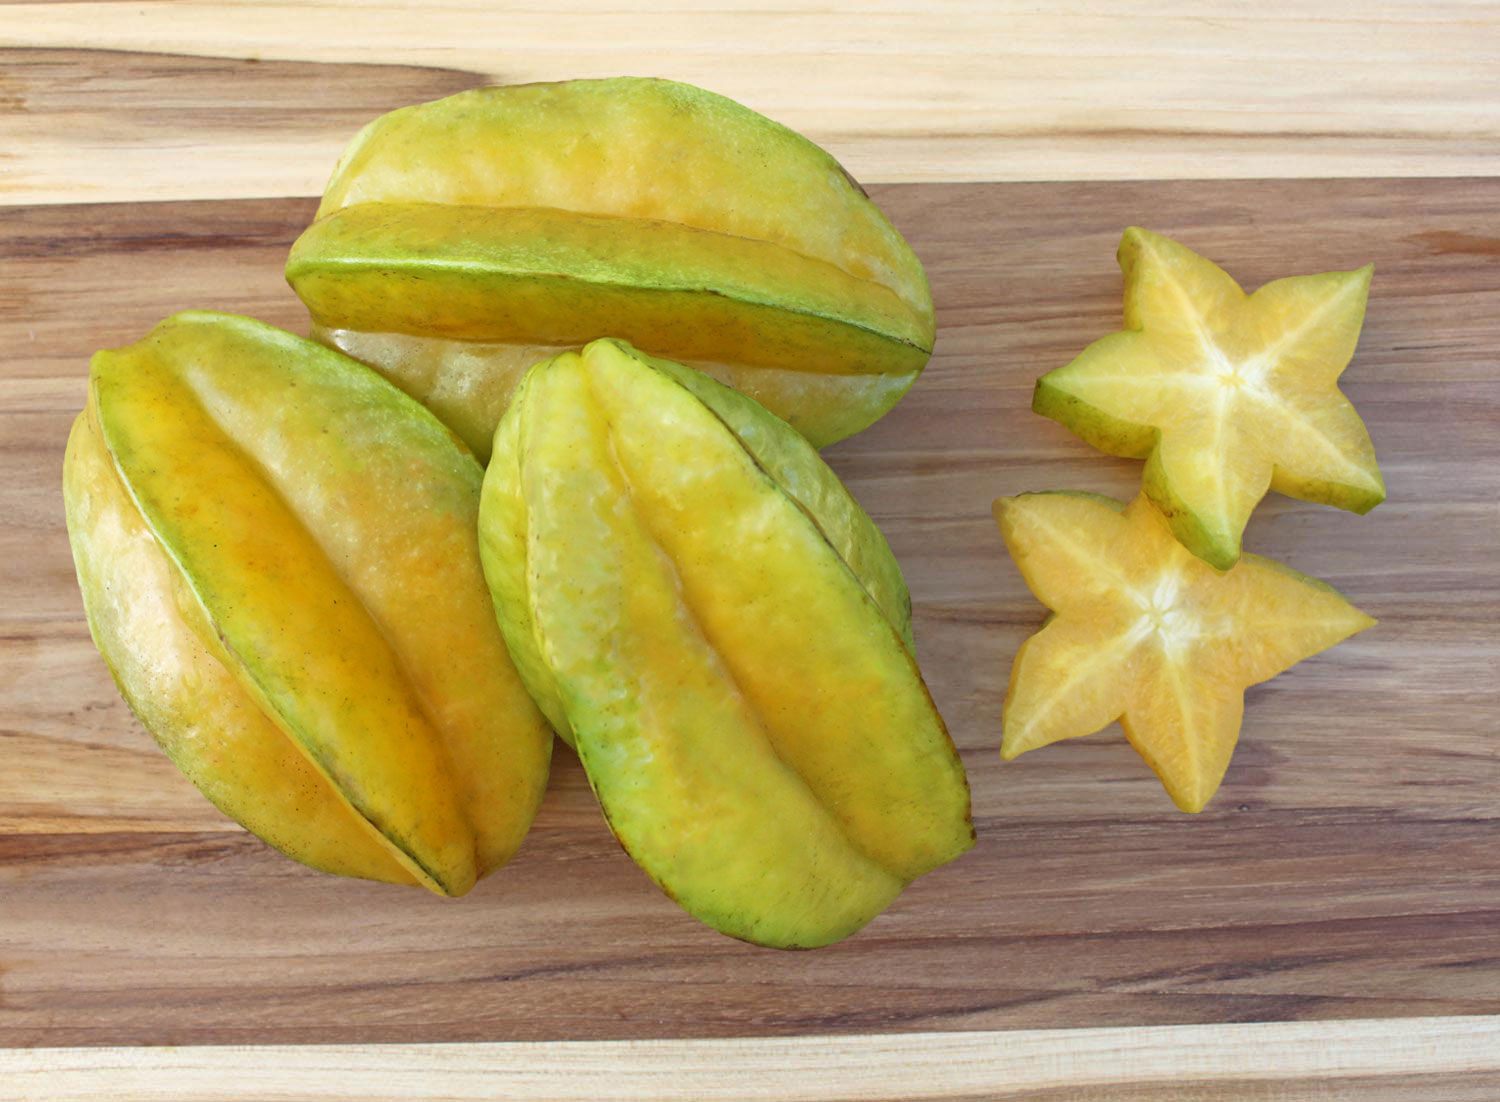 product detail carambola new limeco llc